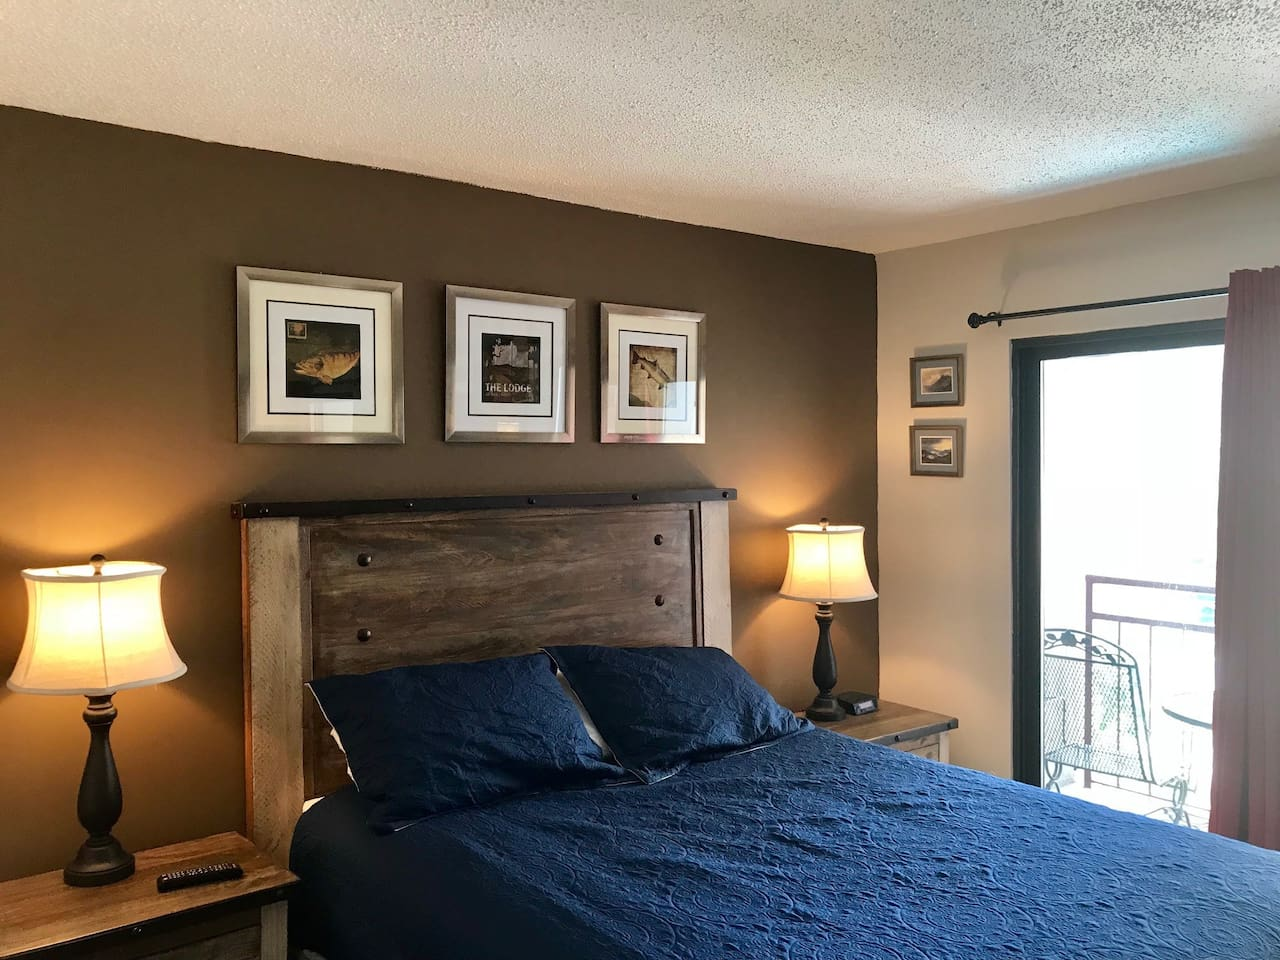 Master bedroom with comfy queen bed and spacious whirlpool tub for two.